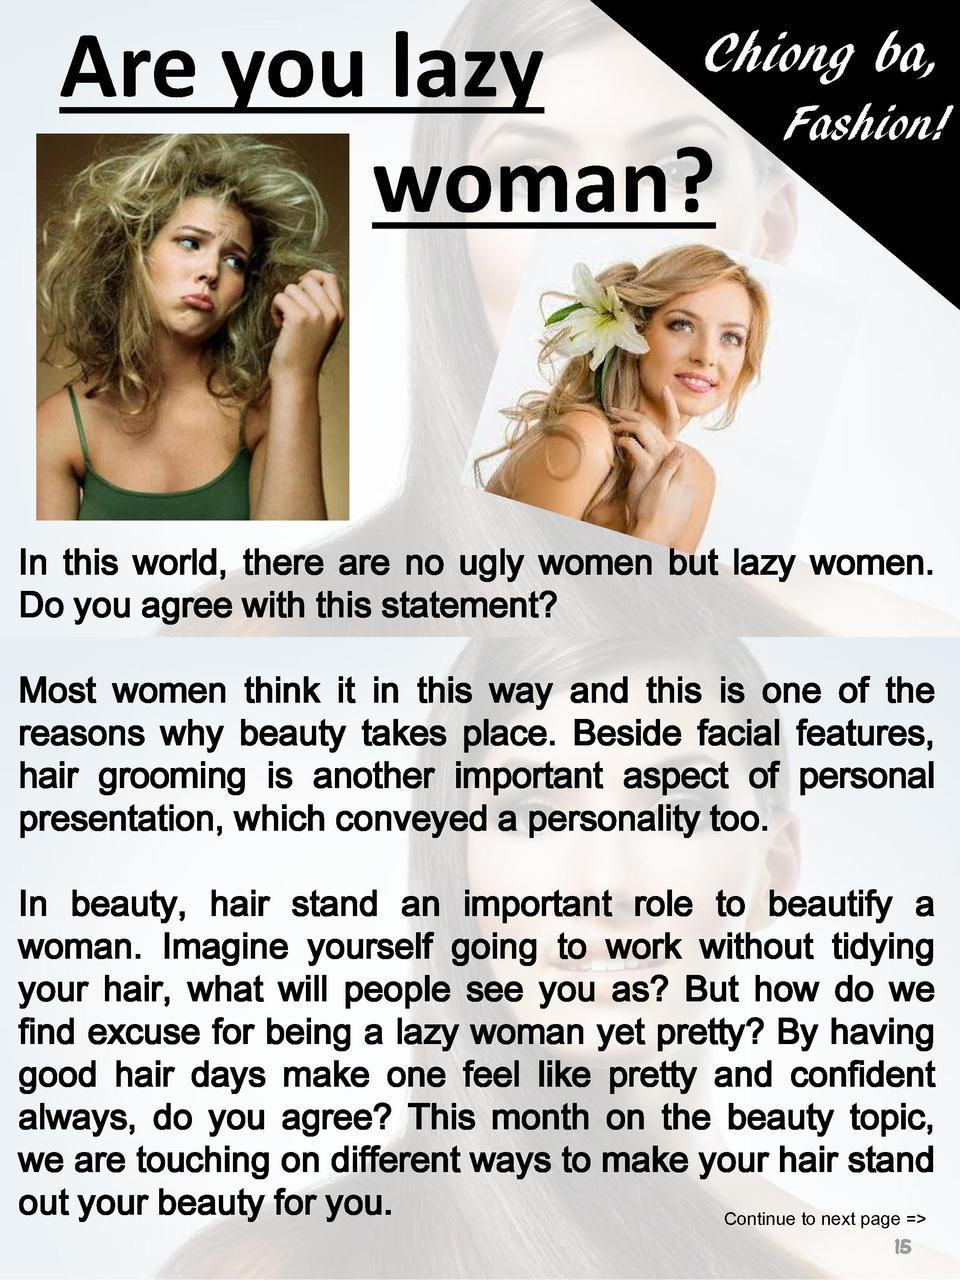 Chiong ba, Are you lazy Fashion  woman   In this world, there are no ugly women but lazy women. Do you agree with this sta...